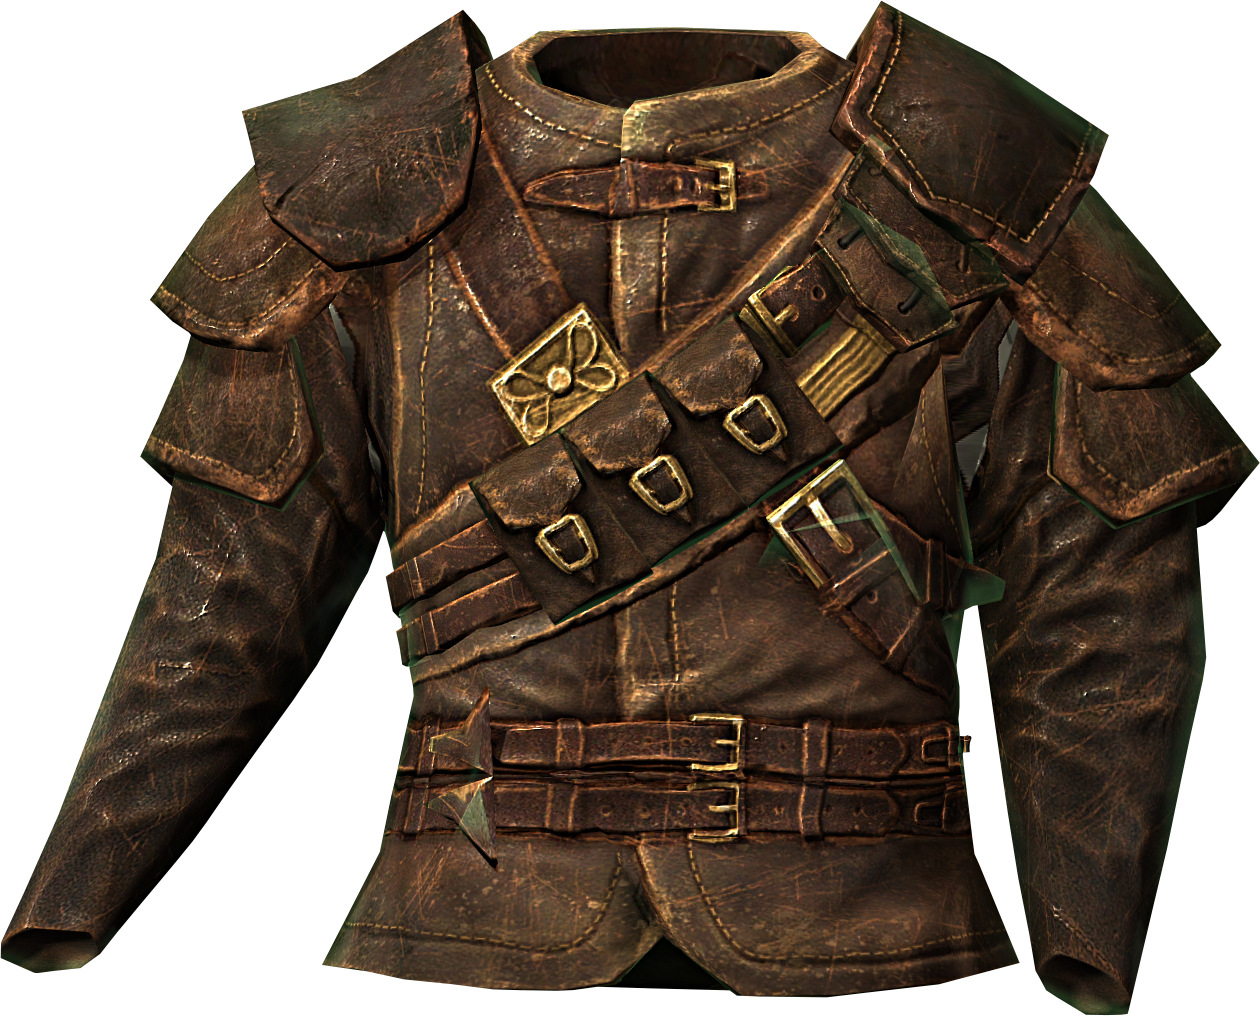 Strogg_s_armor.png